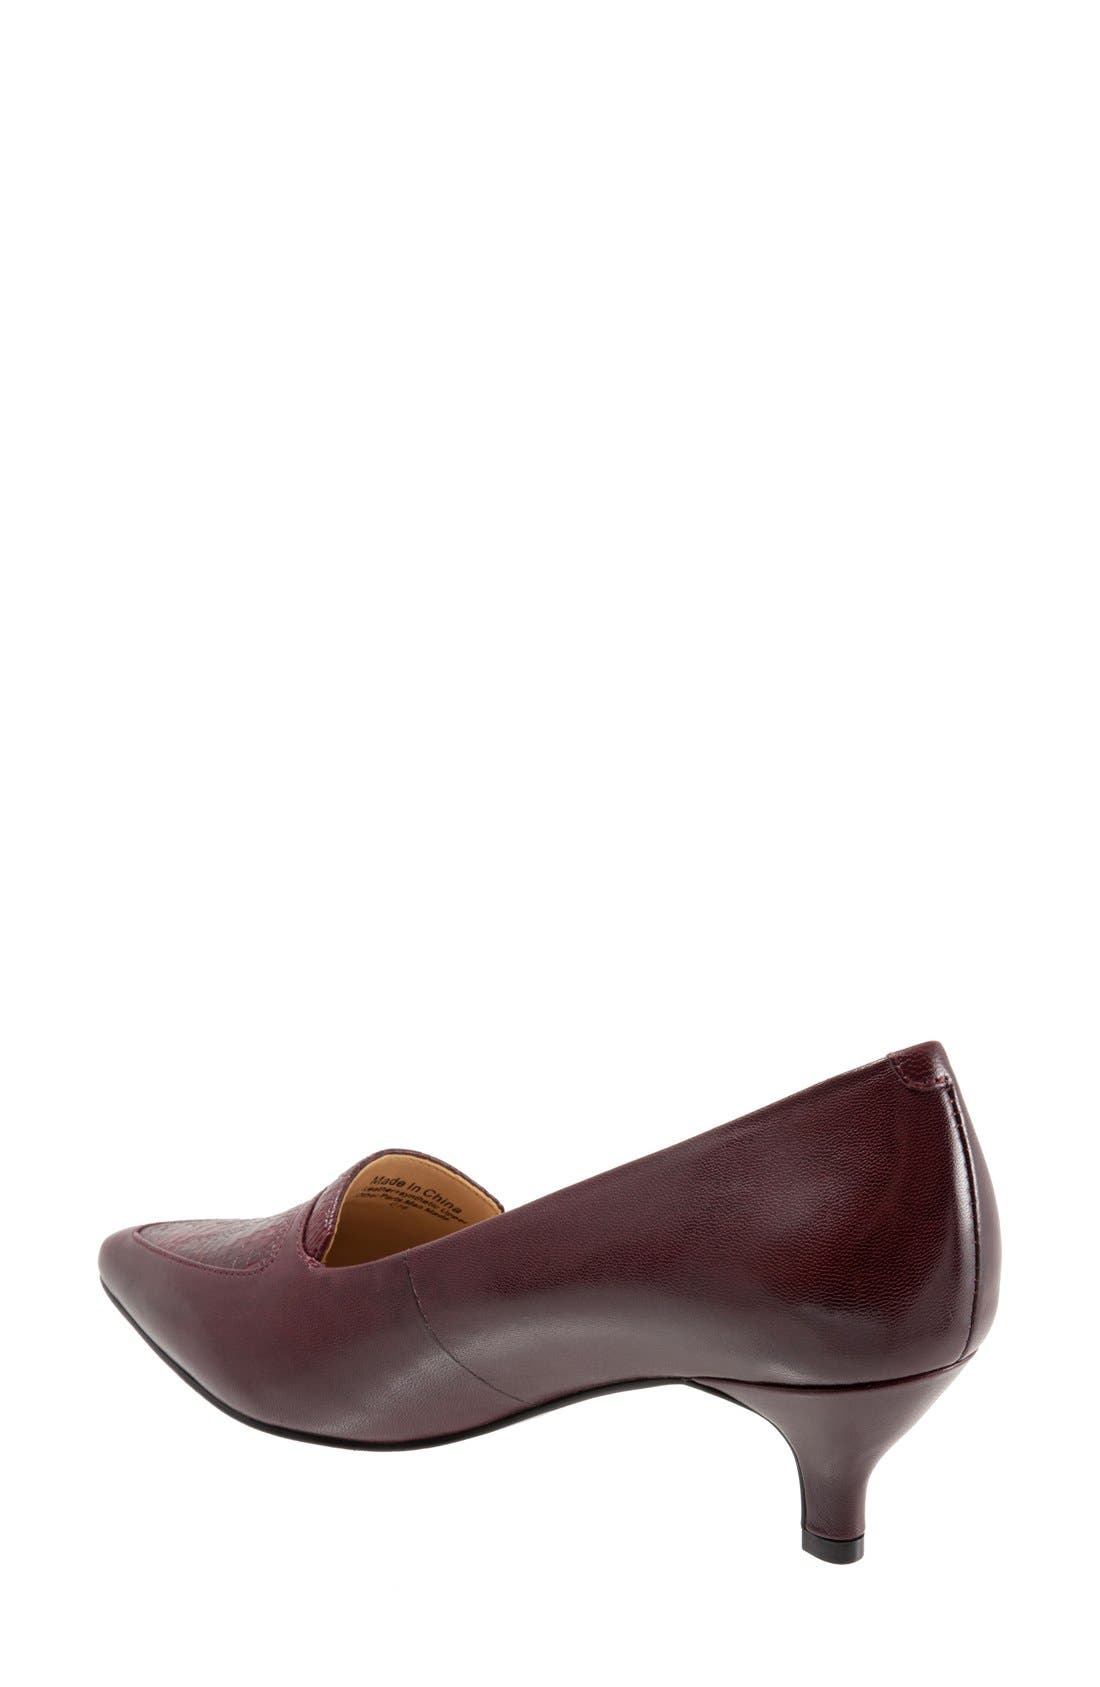 'Piper' Pointy Toe Pump,                             Alternate thumbnail 16, color,